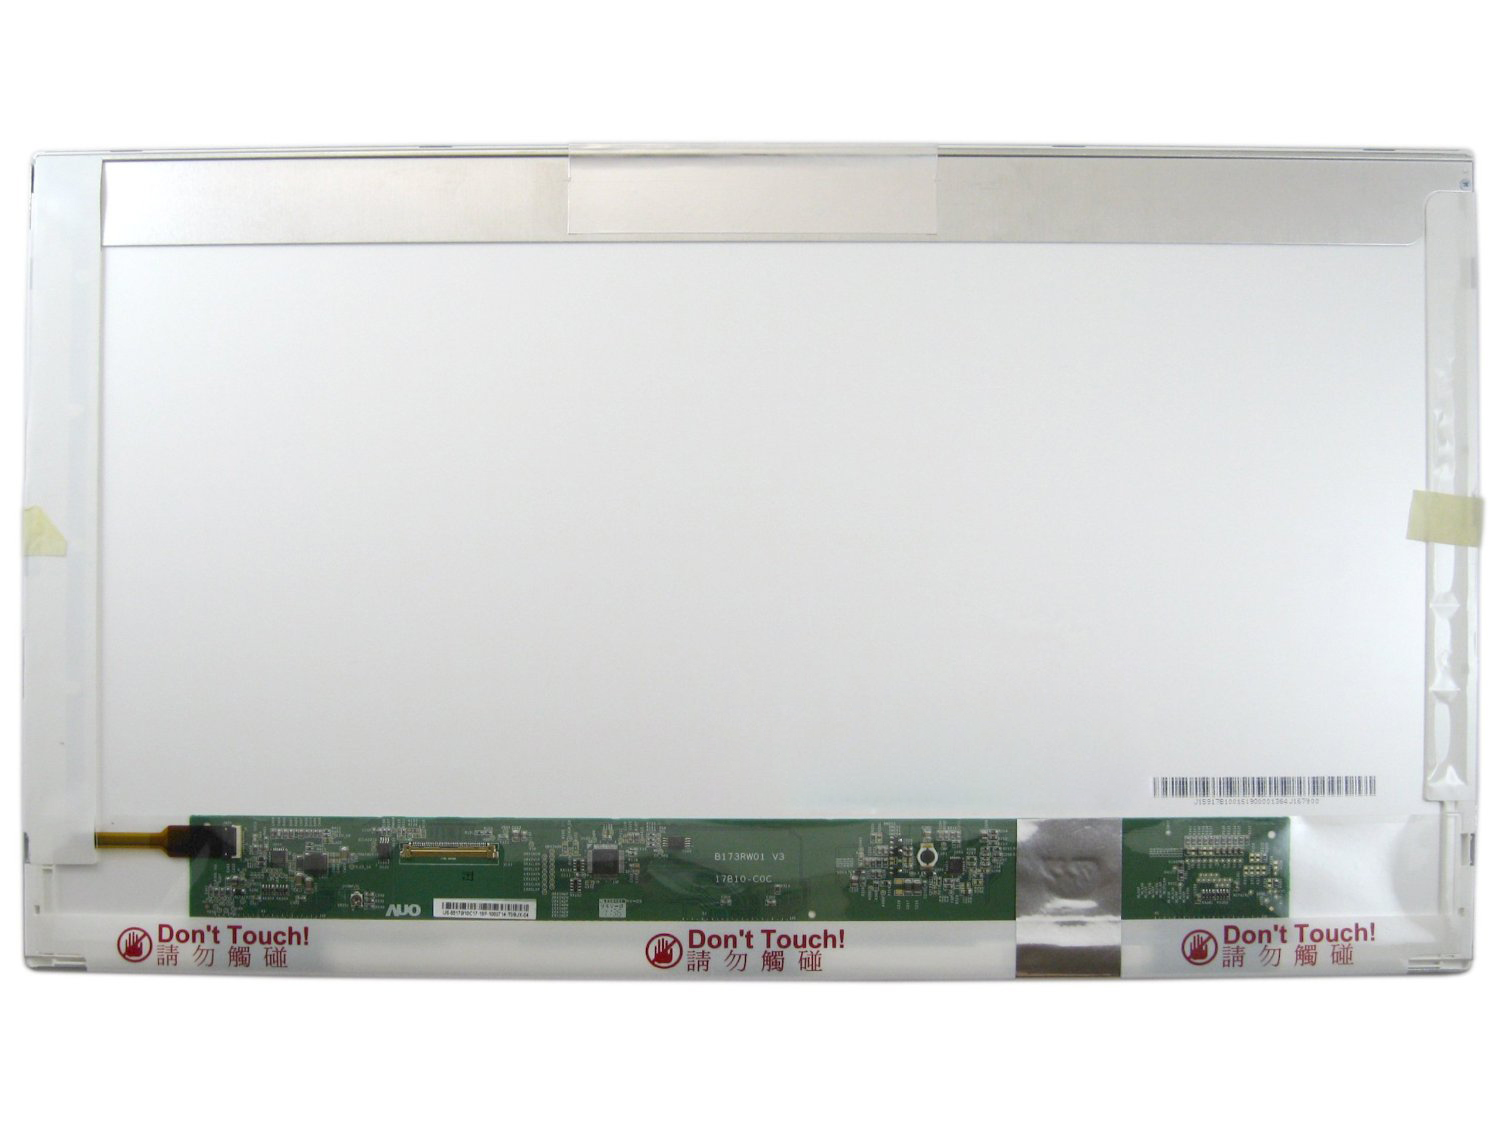 QuYing Laptop LCD Screen for Acer ASPIRE V3-772 V3-772G E5-721 E5-731 E5-771 E5-771G ES1-771 SERIES (17.3 inch 1600x900 30pin) a065vl01 v3 lcd screen